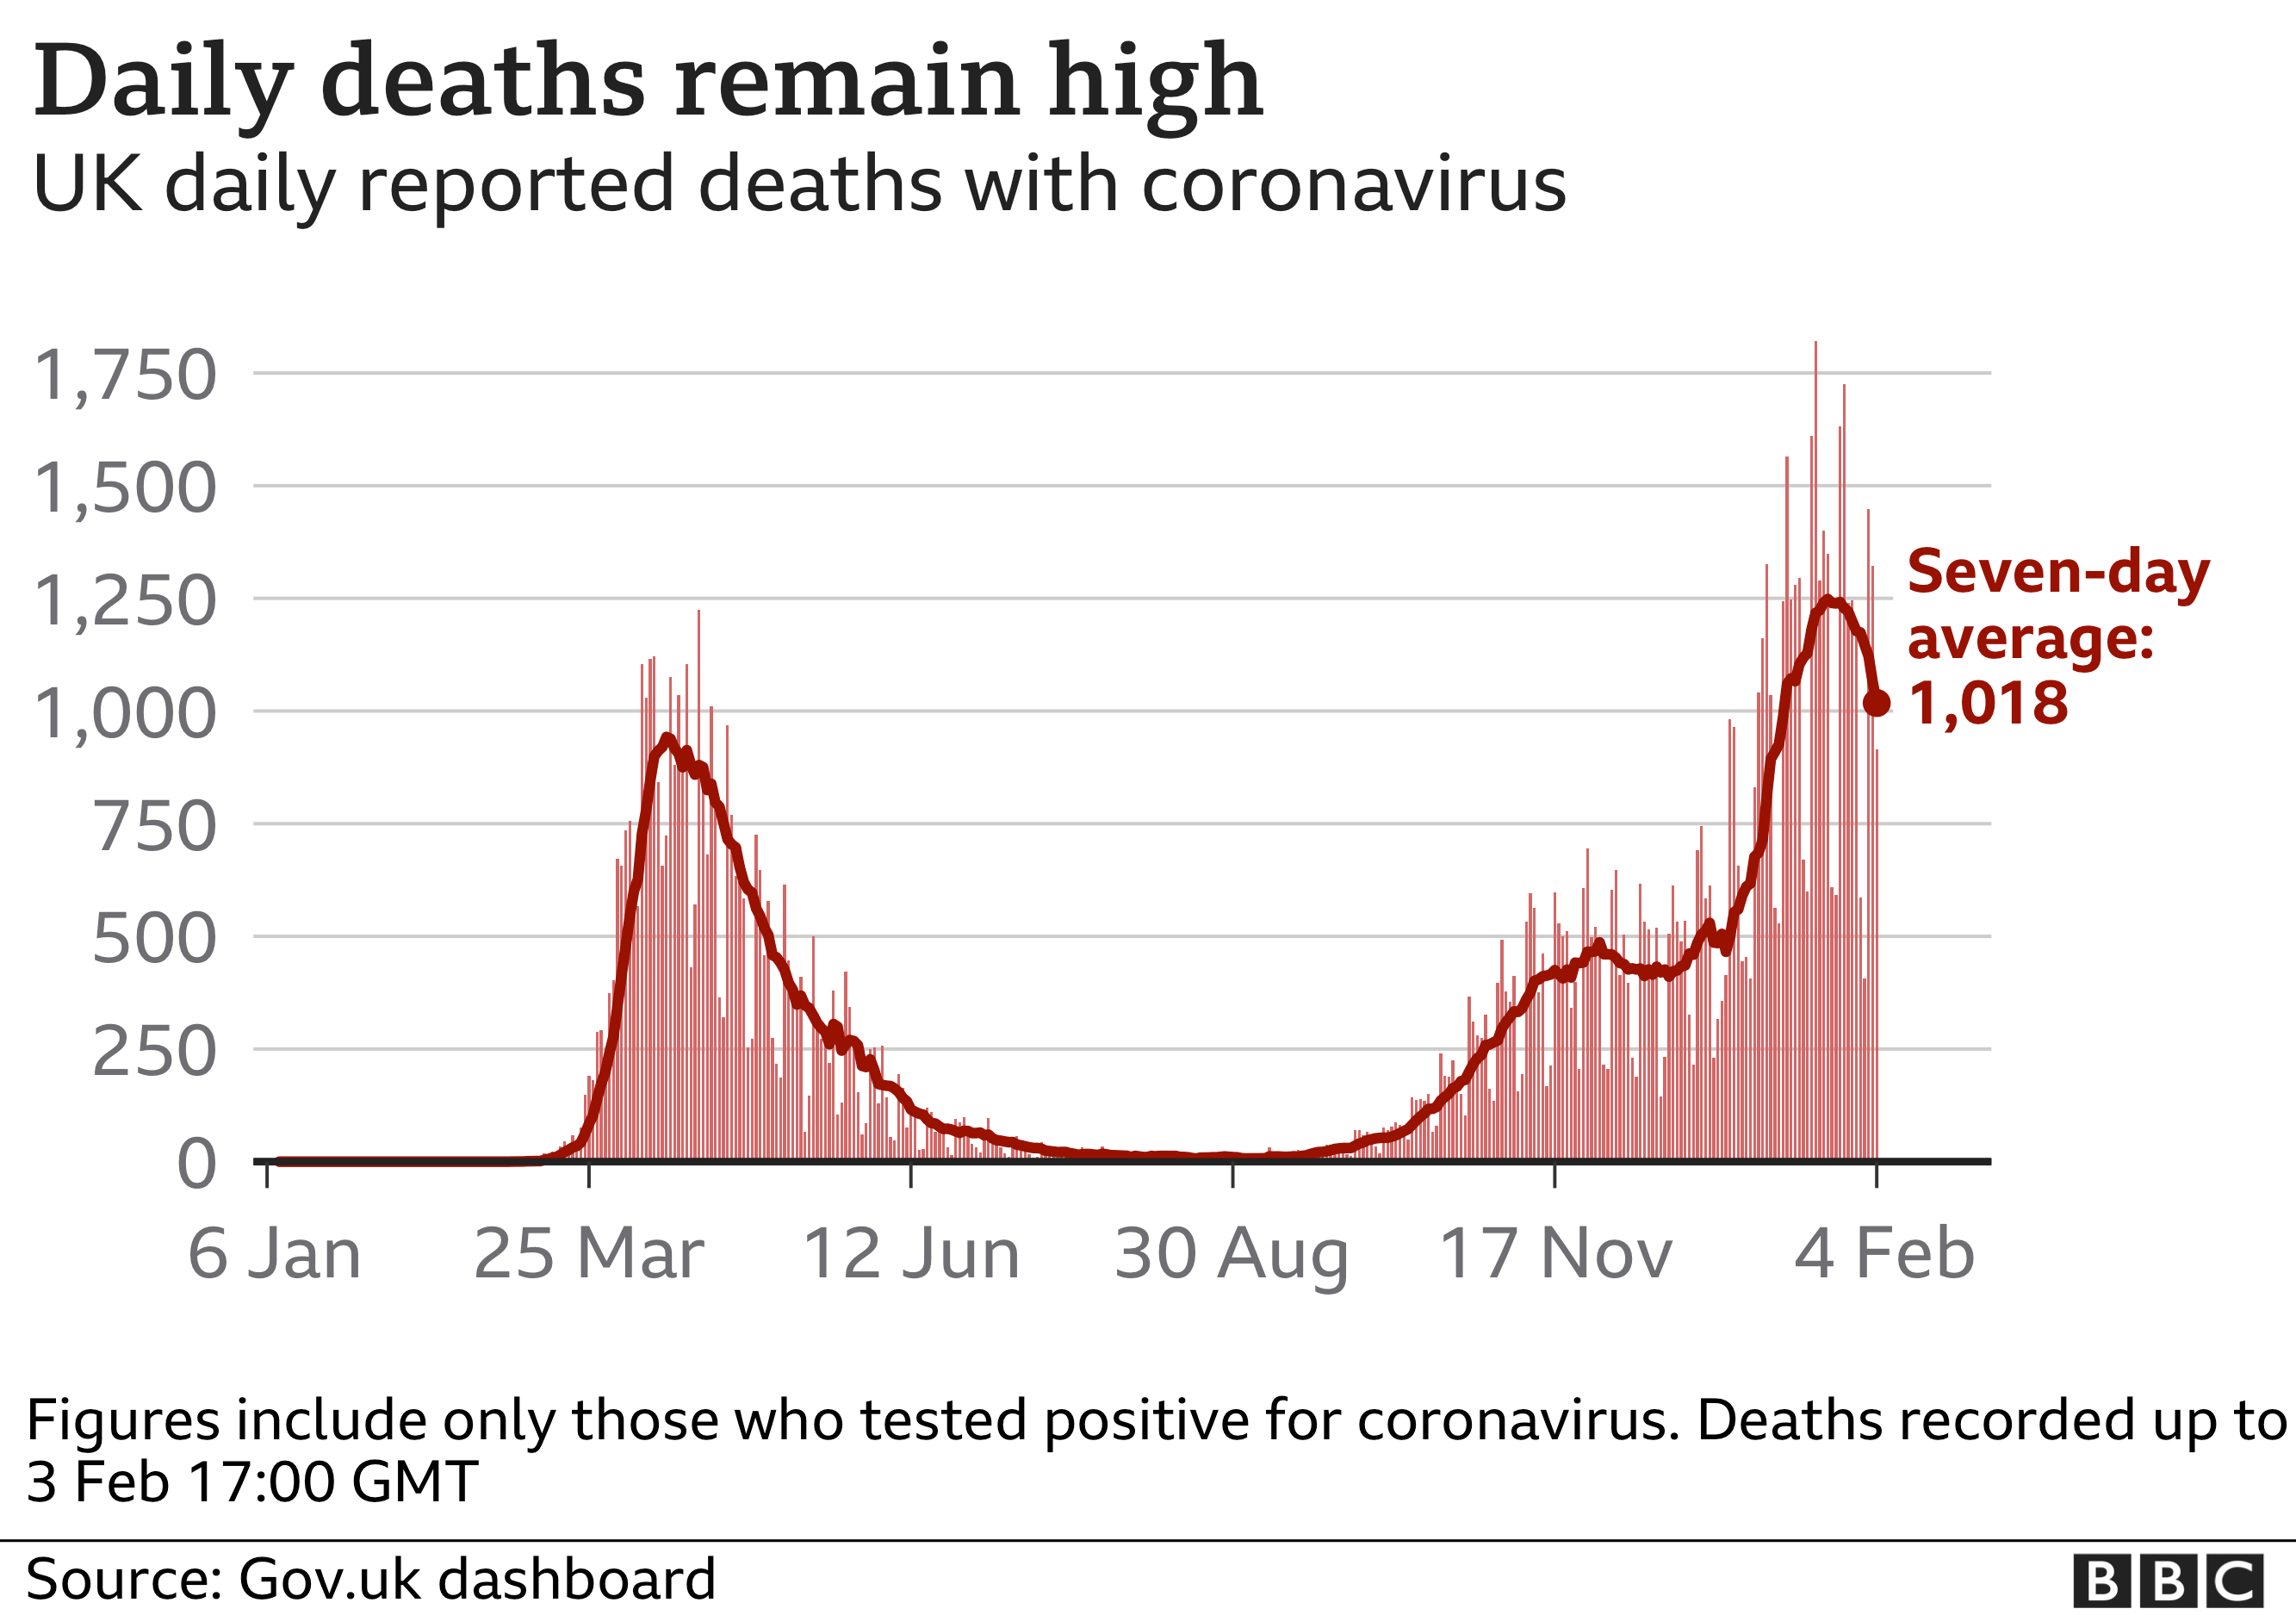 Chart shows daily deaths remain high. Updated 4 February.